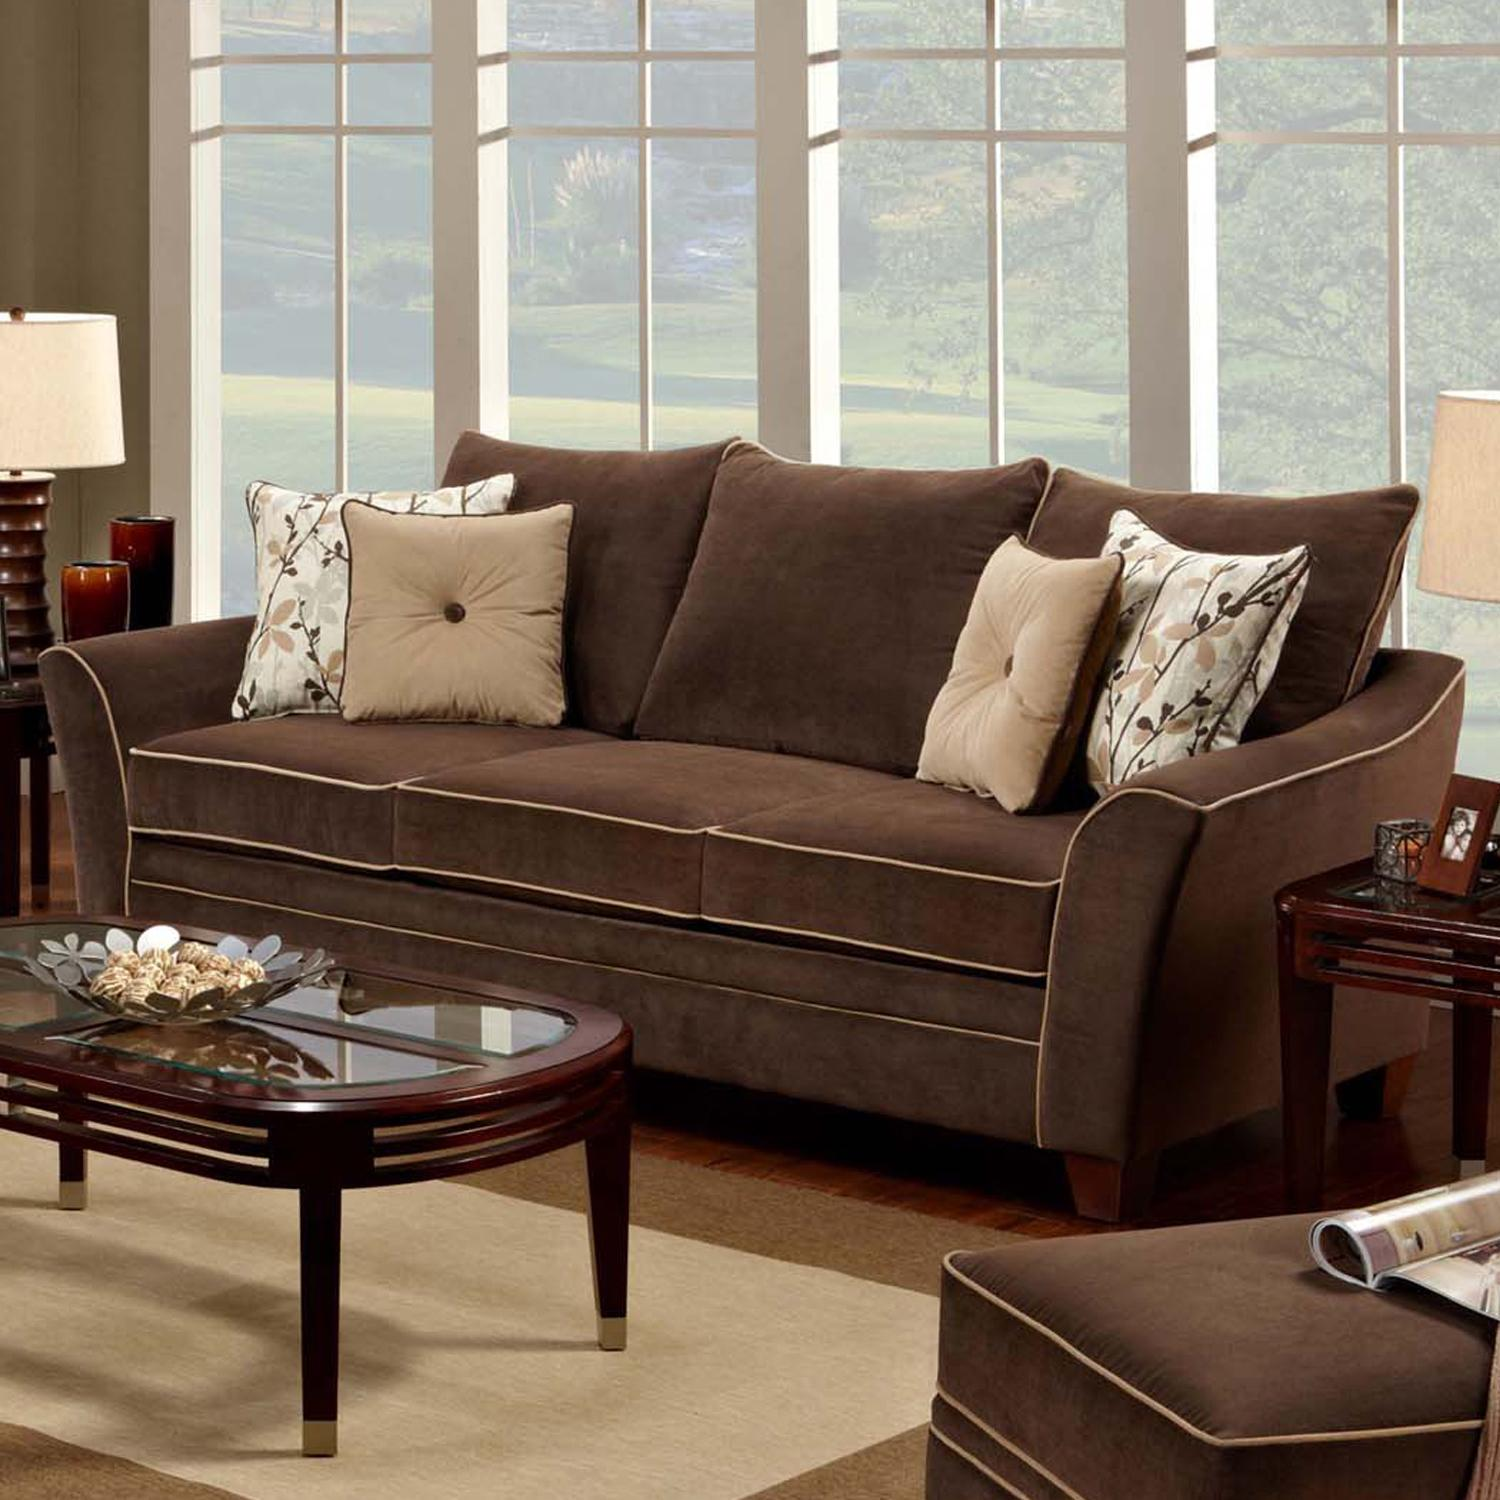 811 Bridgeport Sofa by Franklin at Furniture Superstore - Rochester, MN